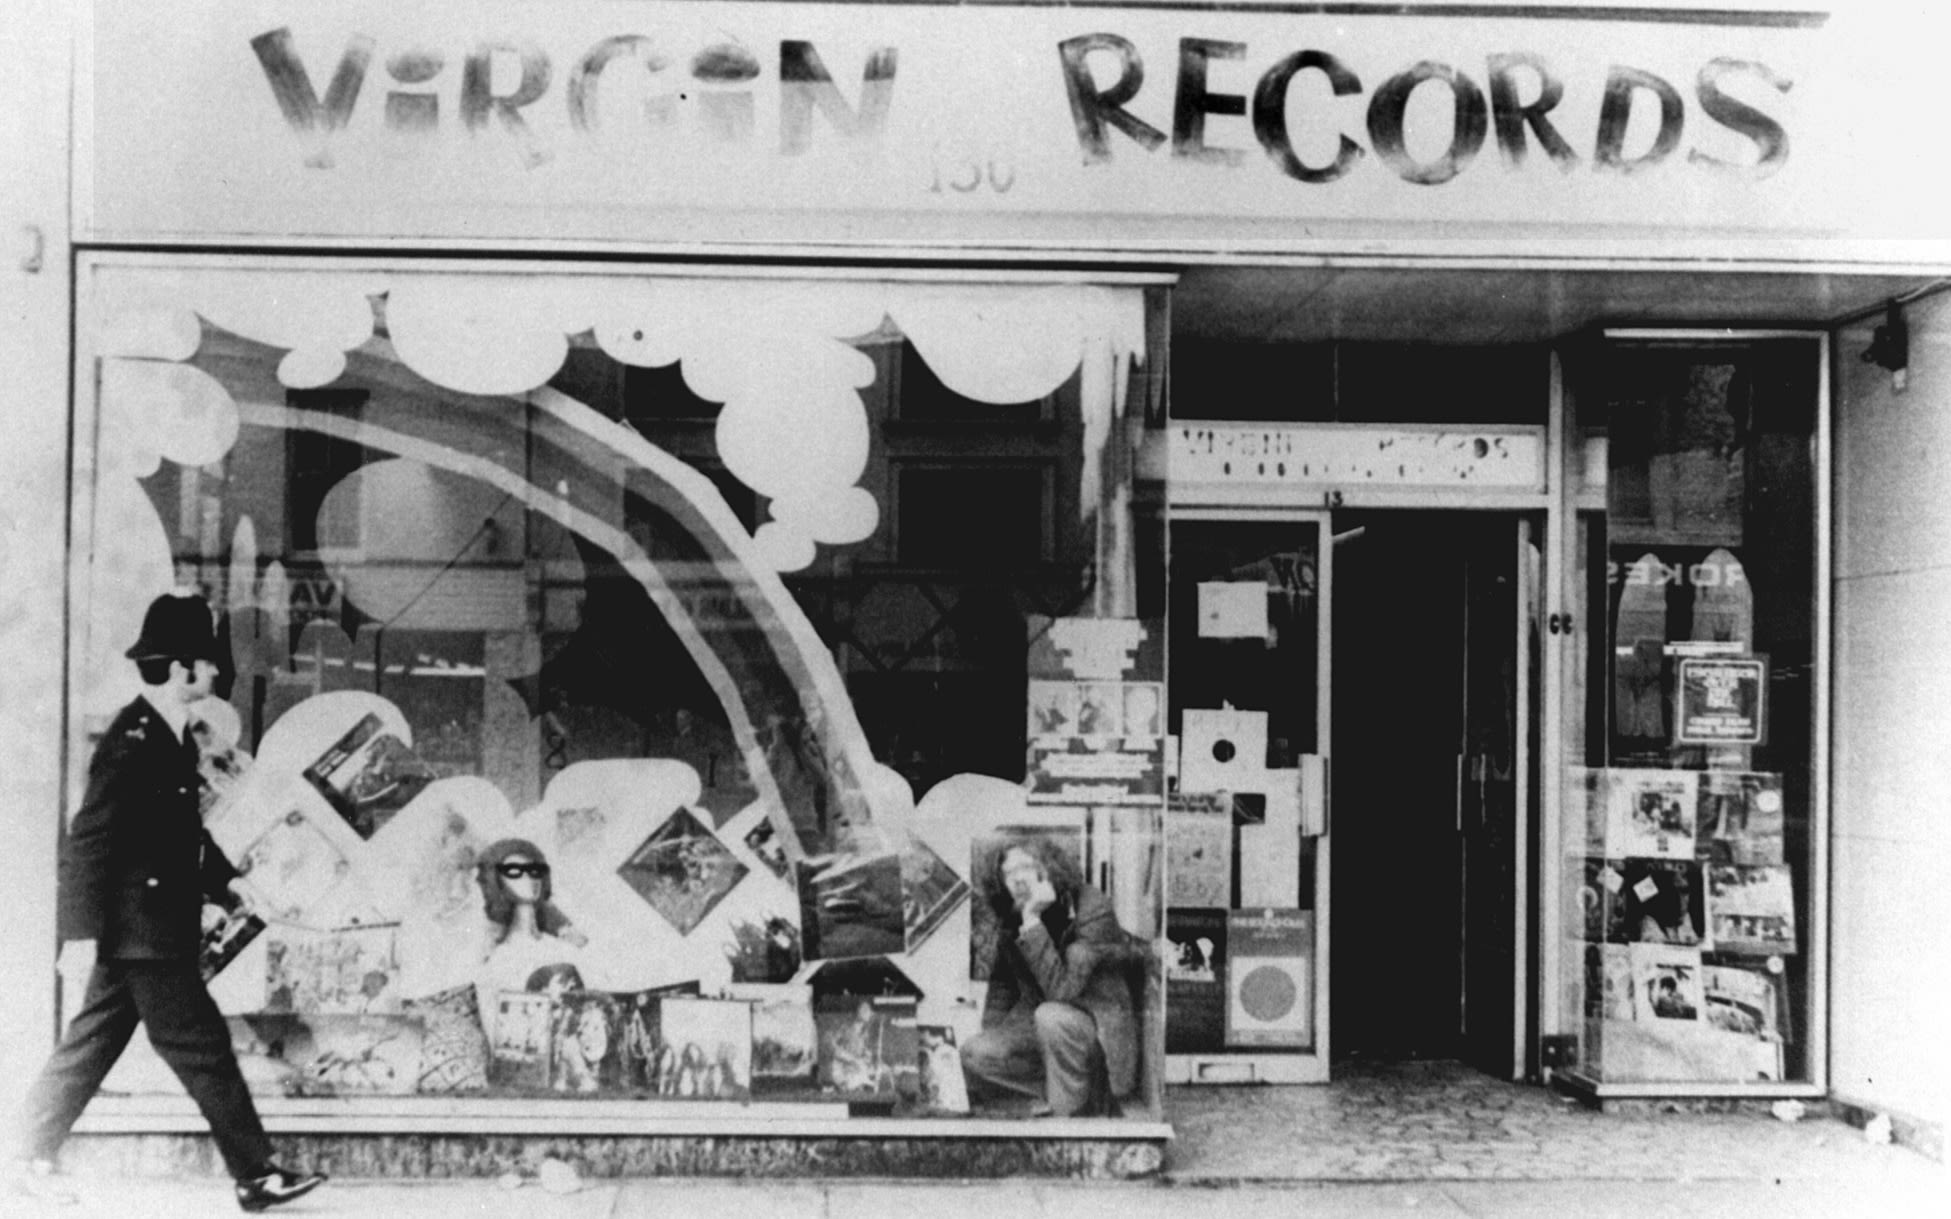 Black and white exterior of the Virgin Records store